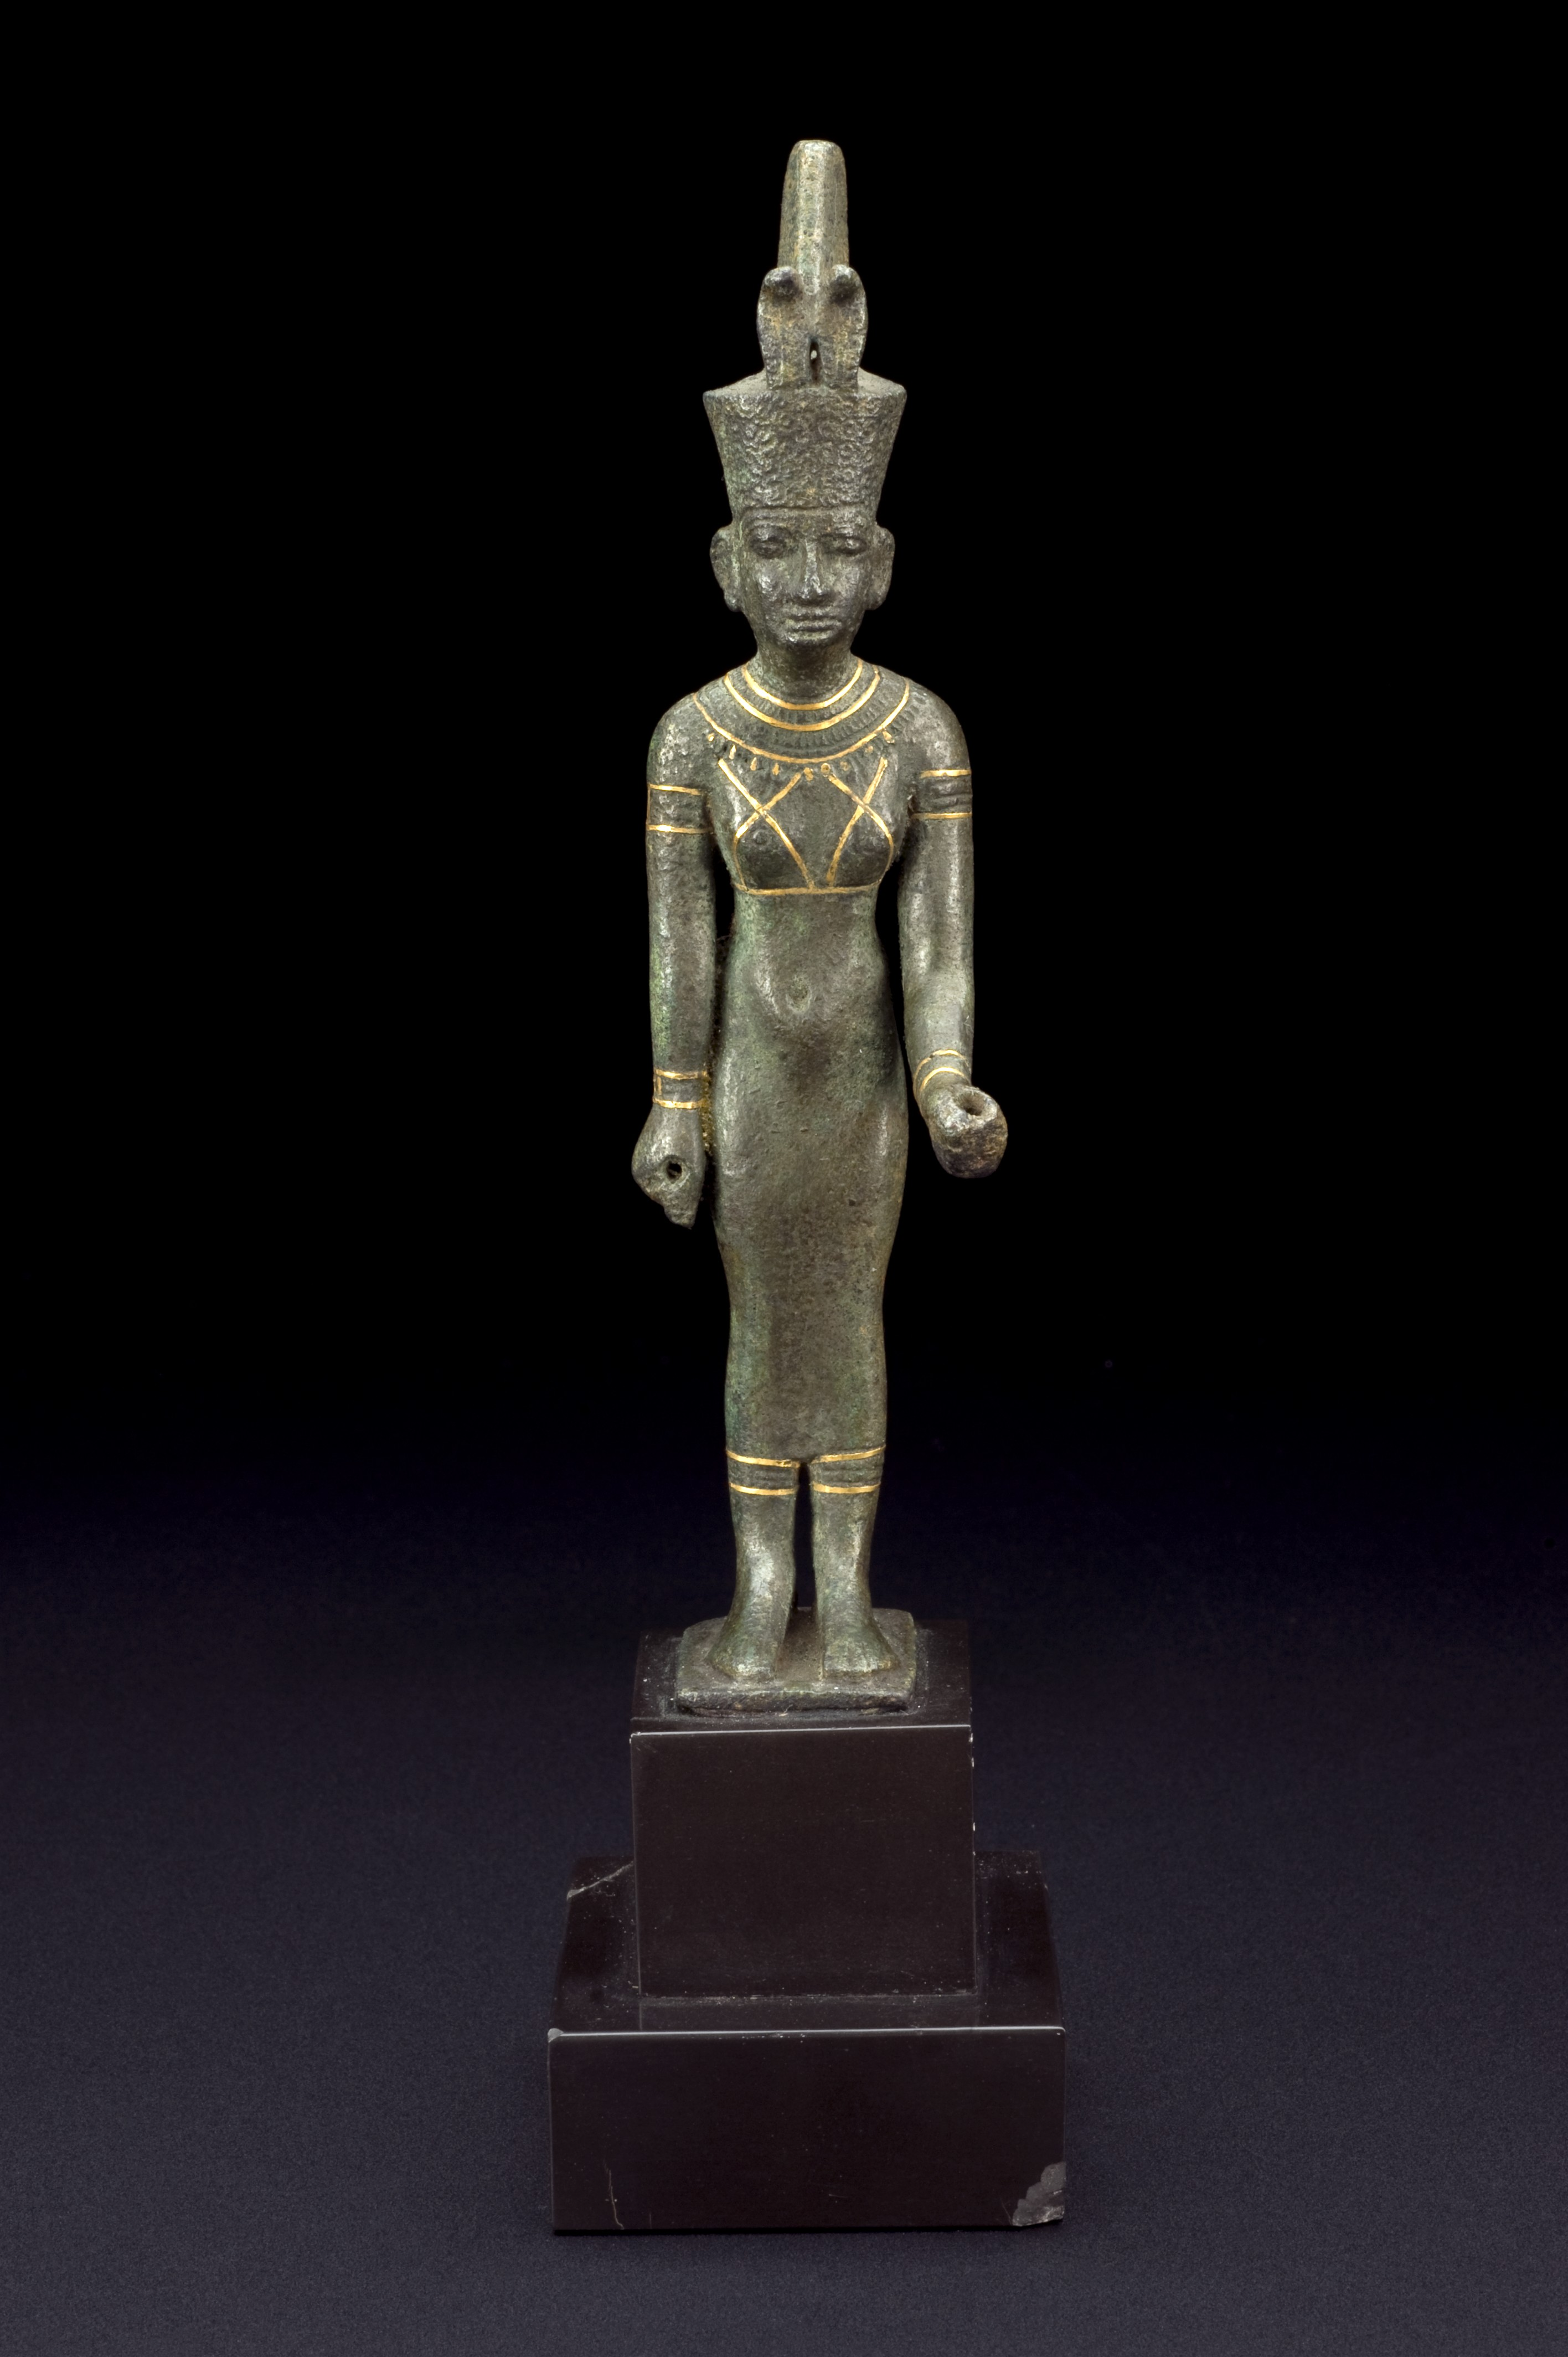 File:Bronze statue of Neith, Egypt, 200 BCE-400 CE ...